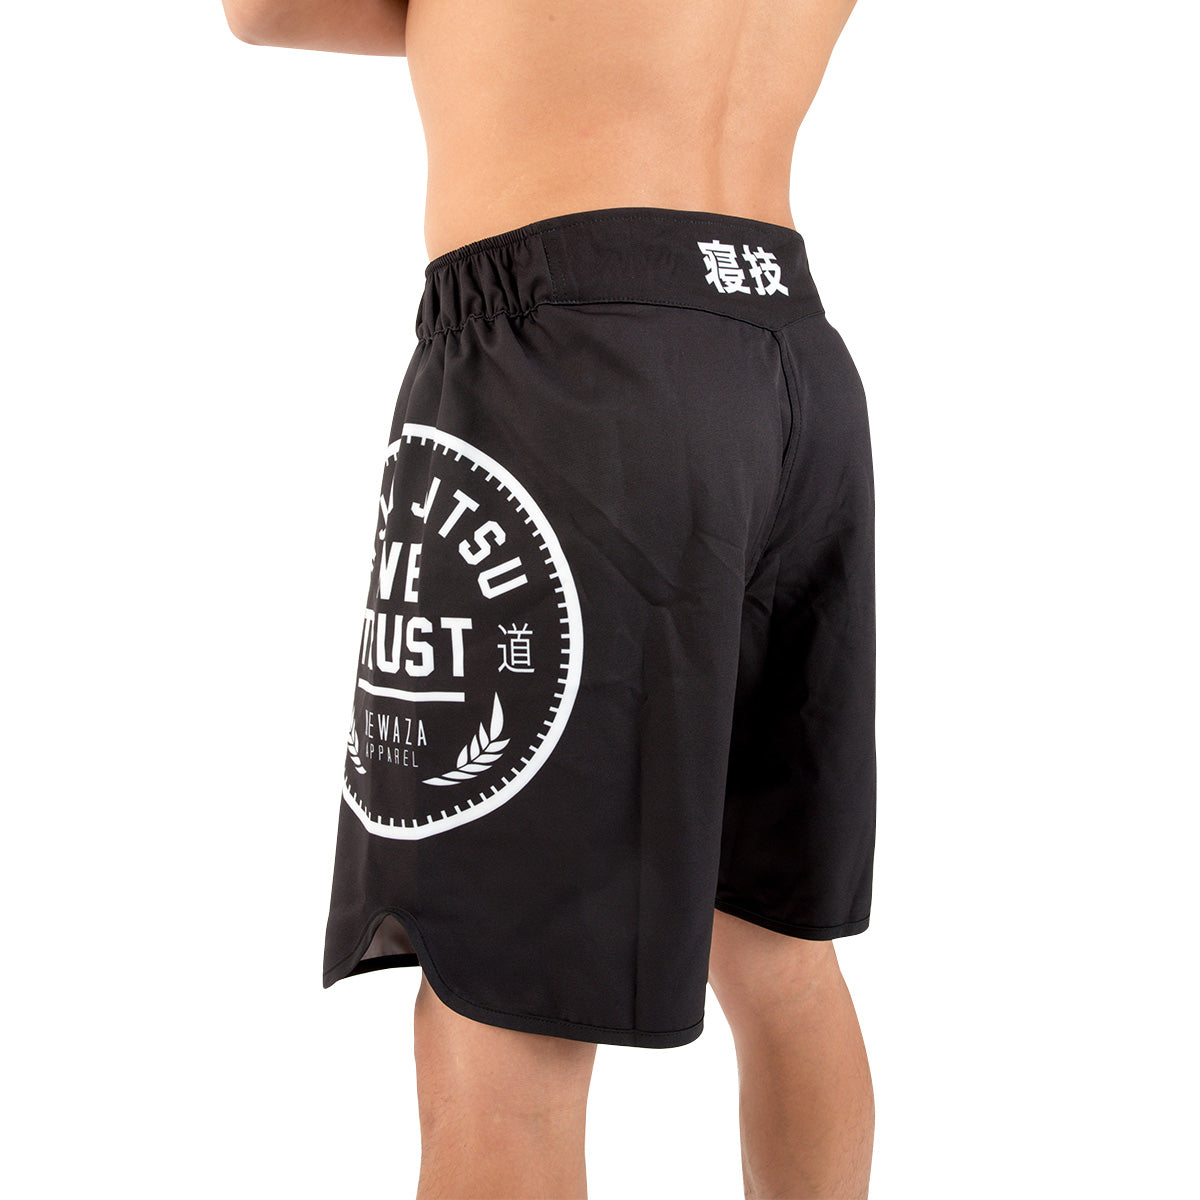 We Trust HYBRID Fight Shorts